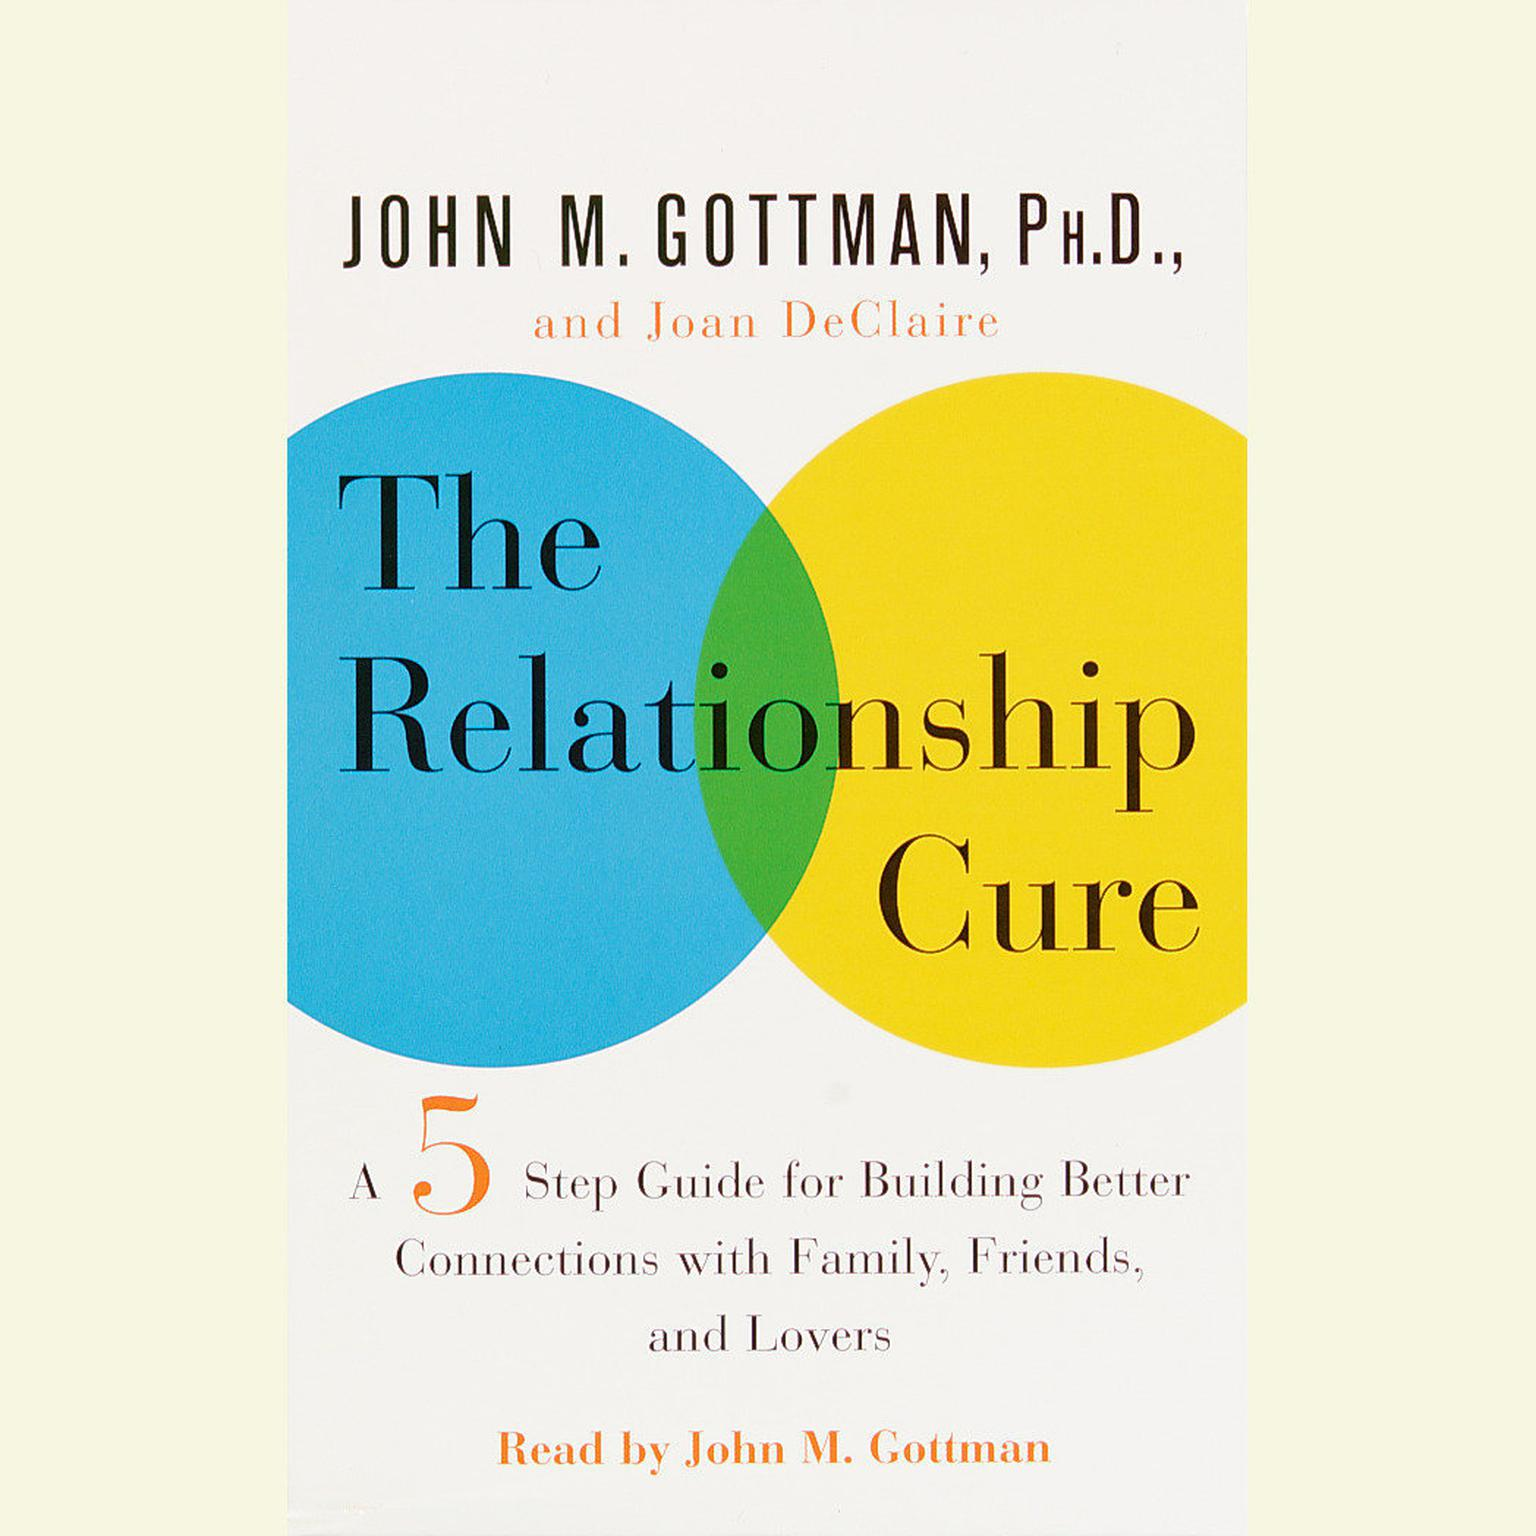 Printable The Relationship Cure (Abridged): A 5 Step Guide to Strengthening Your Marriage, Family, and Friendships Audiobook Cover Art